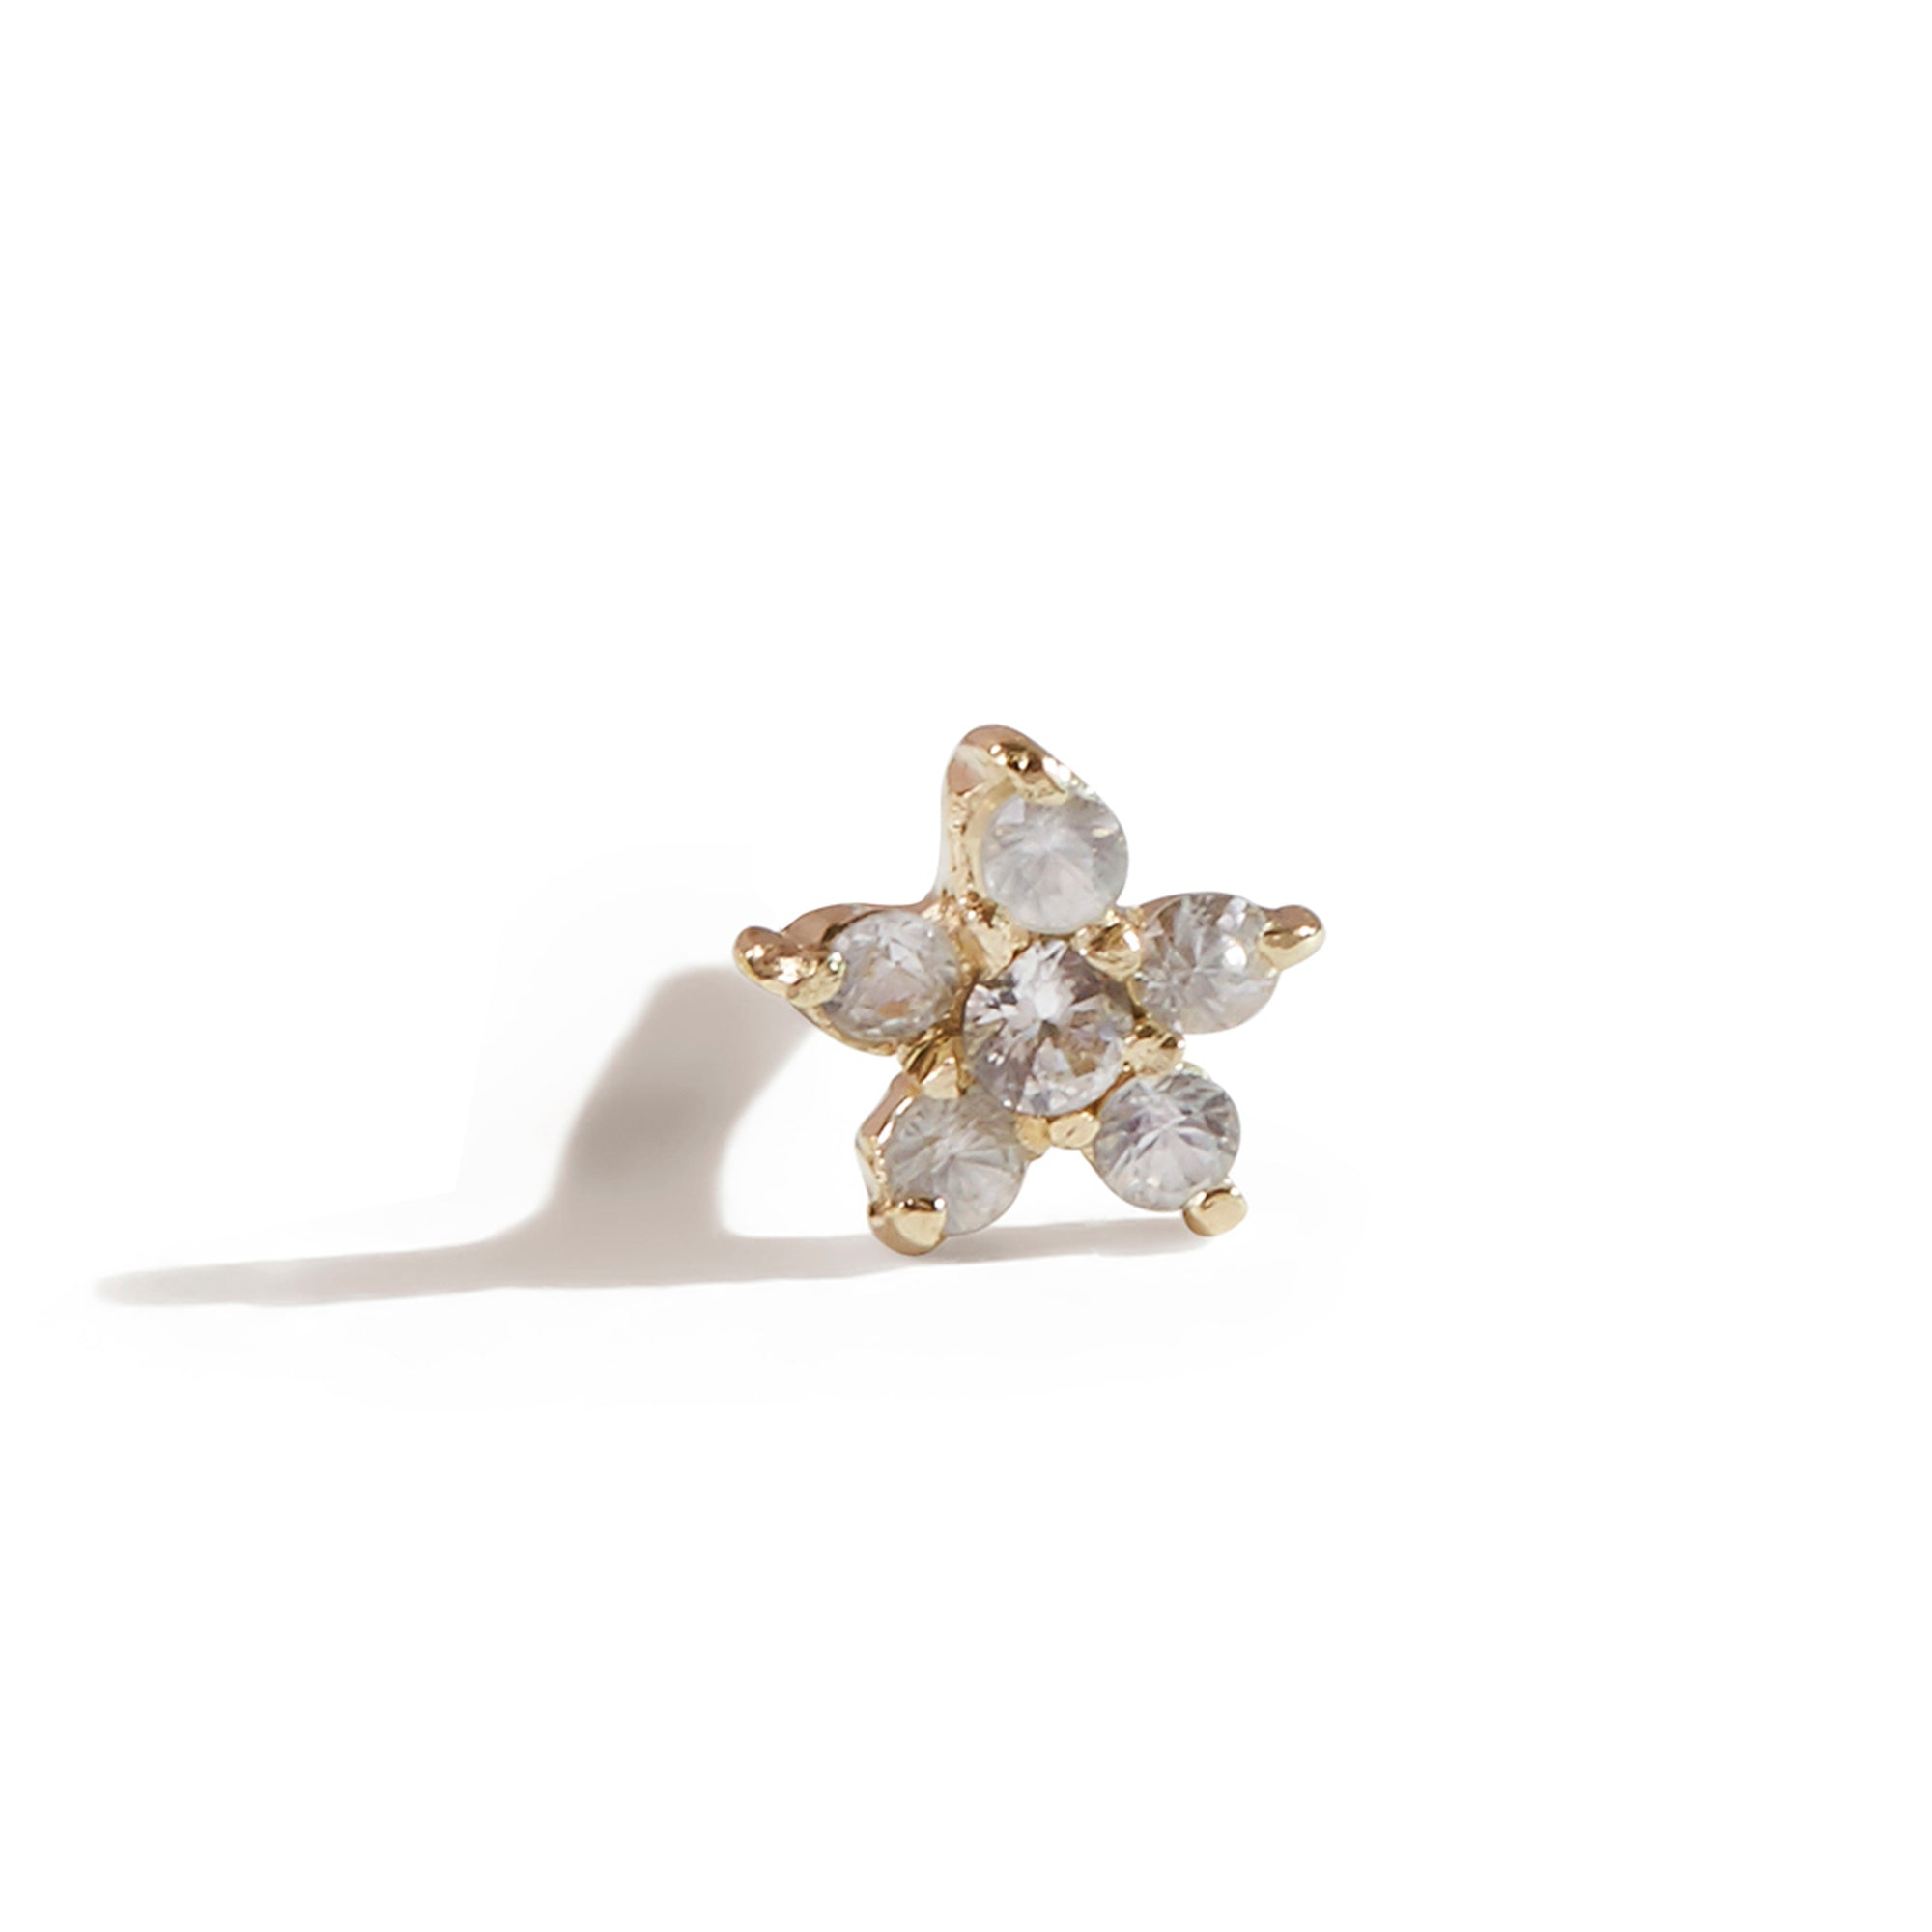 The White Sapphire Flower Stud in 9kt Gold